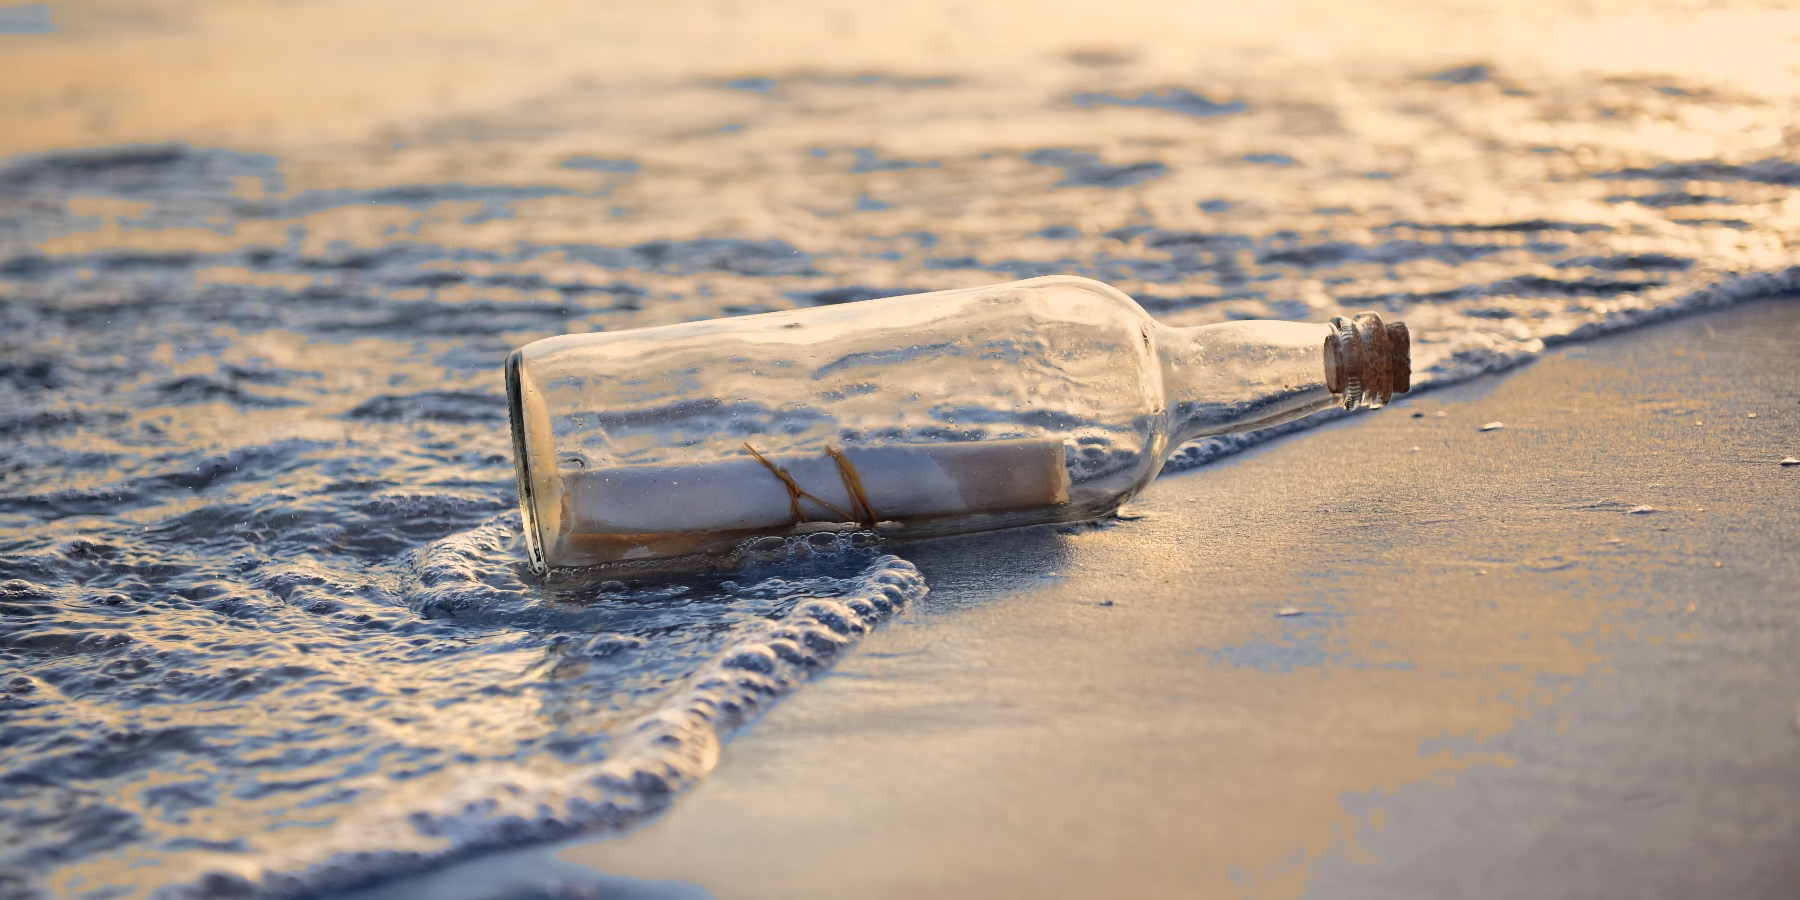 A message in a bottle on the beach, touched by the sea.